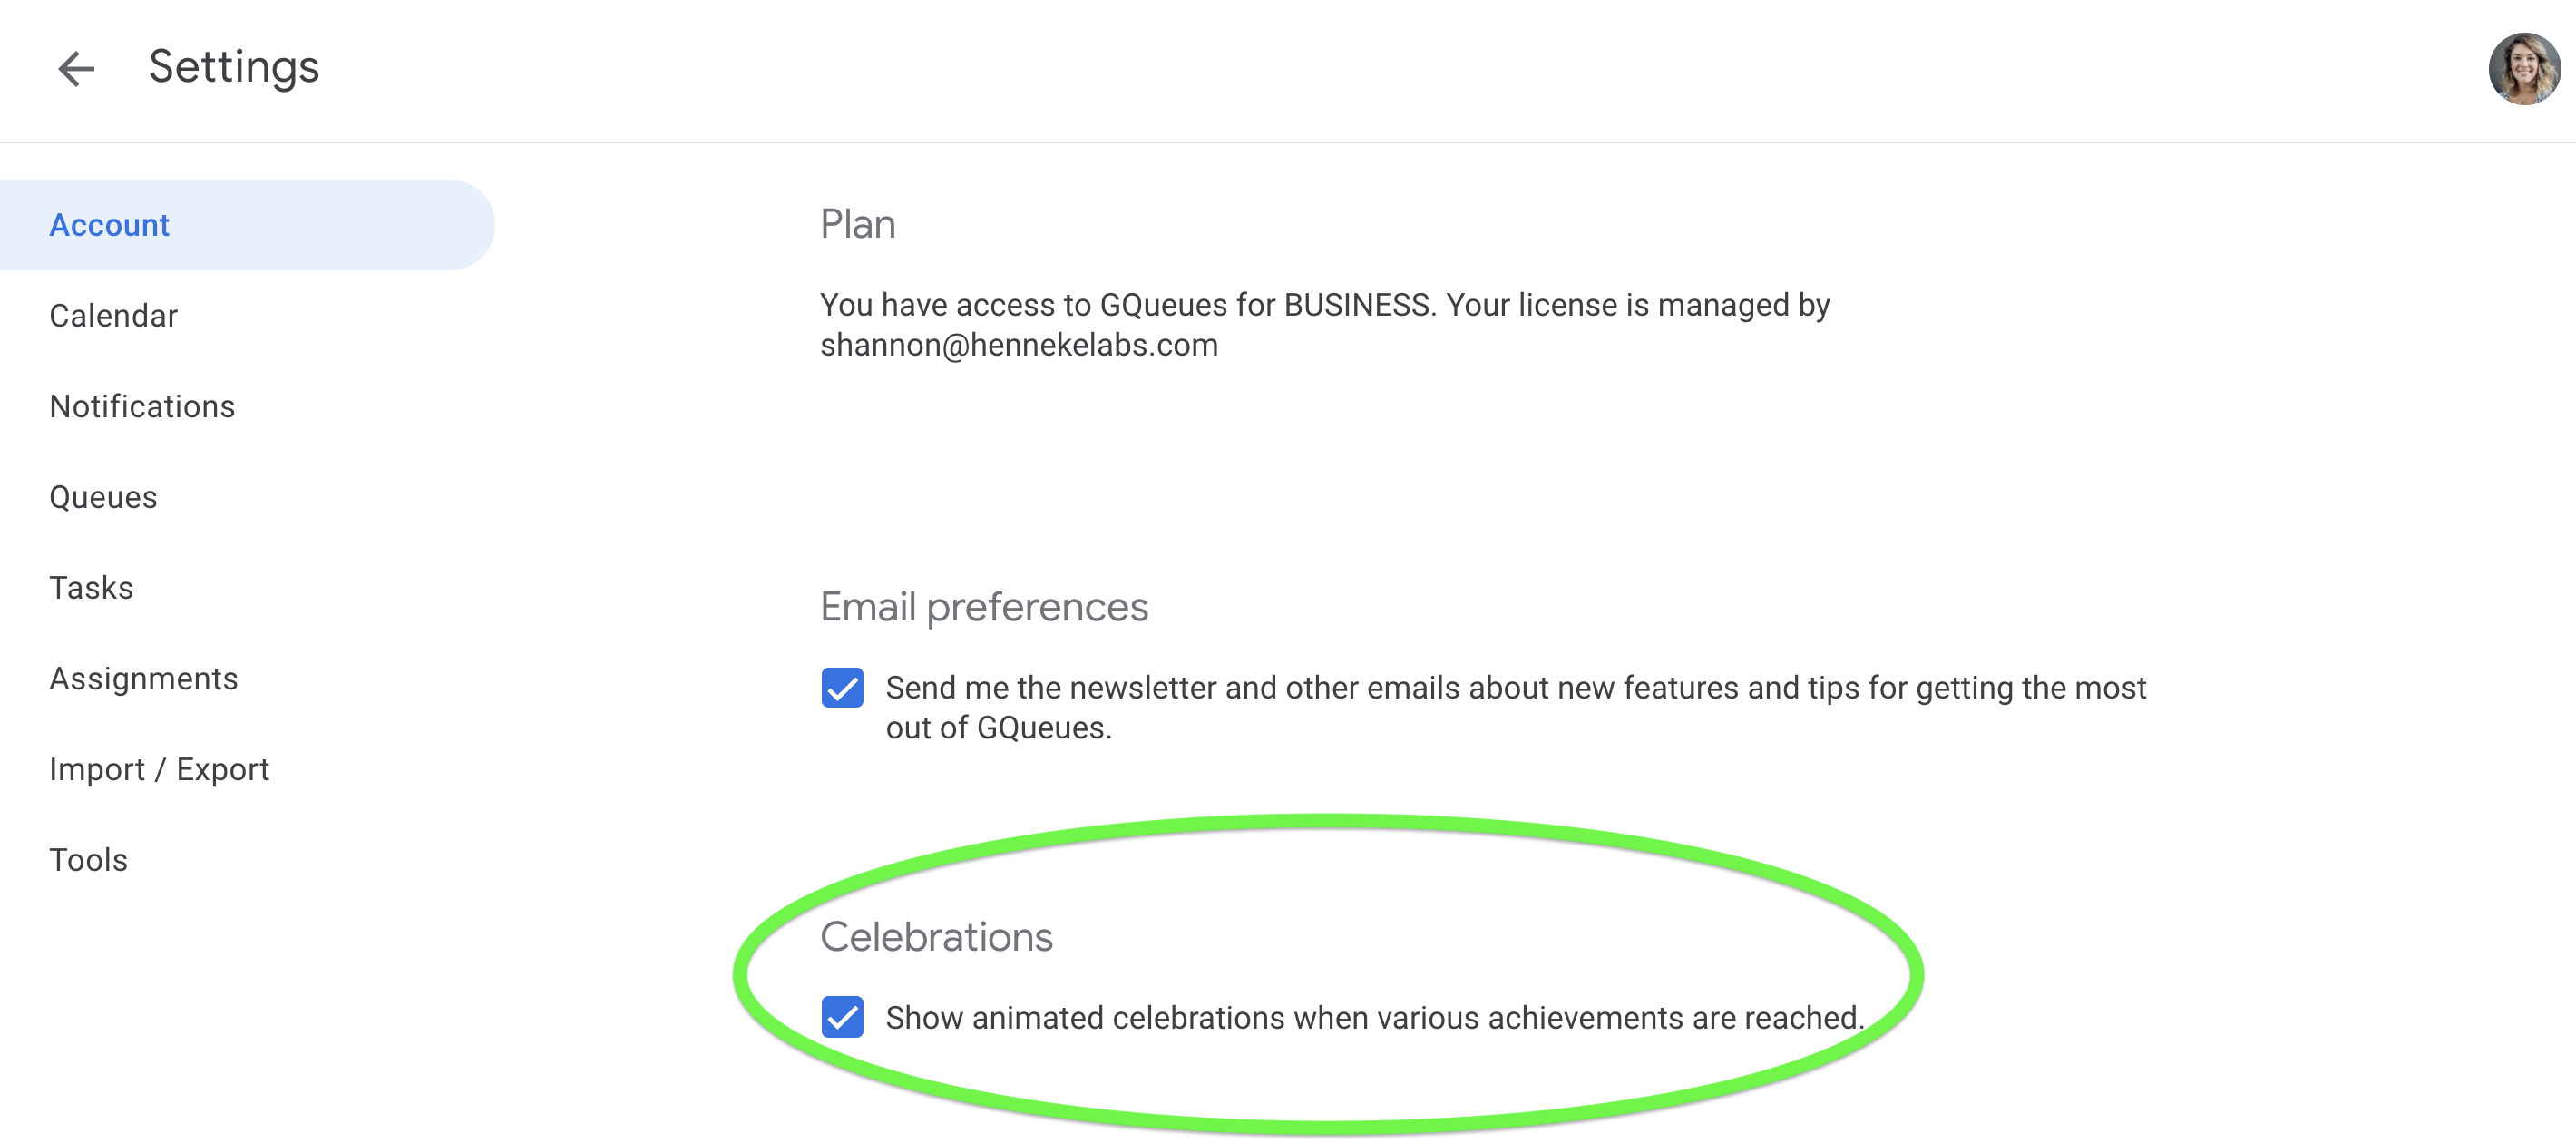 You can turn off animated celebrations from the Account tab in GQueues settings